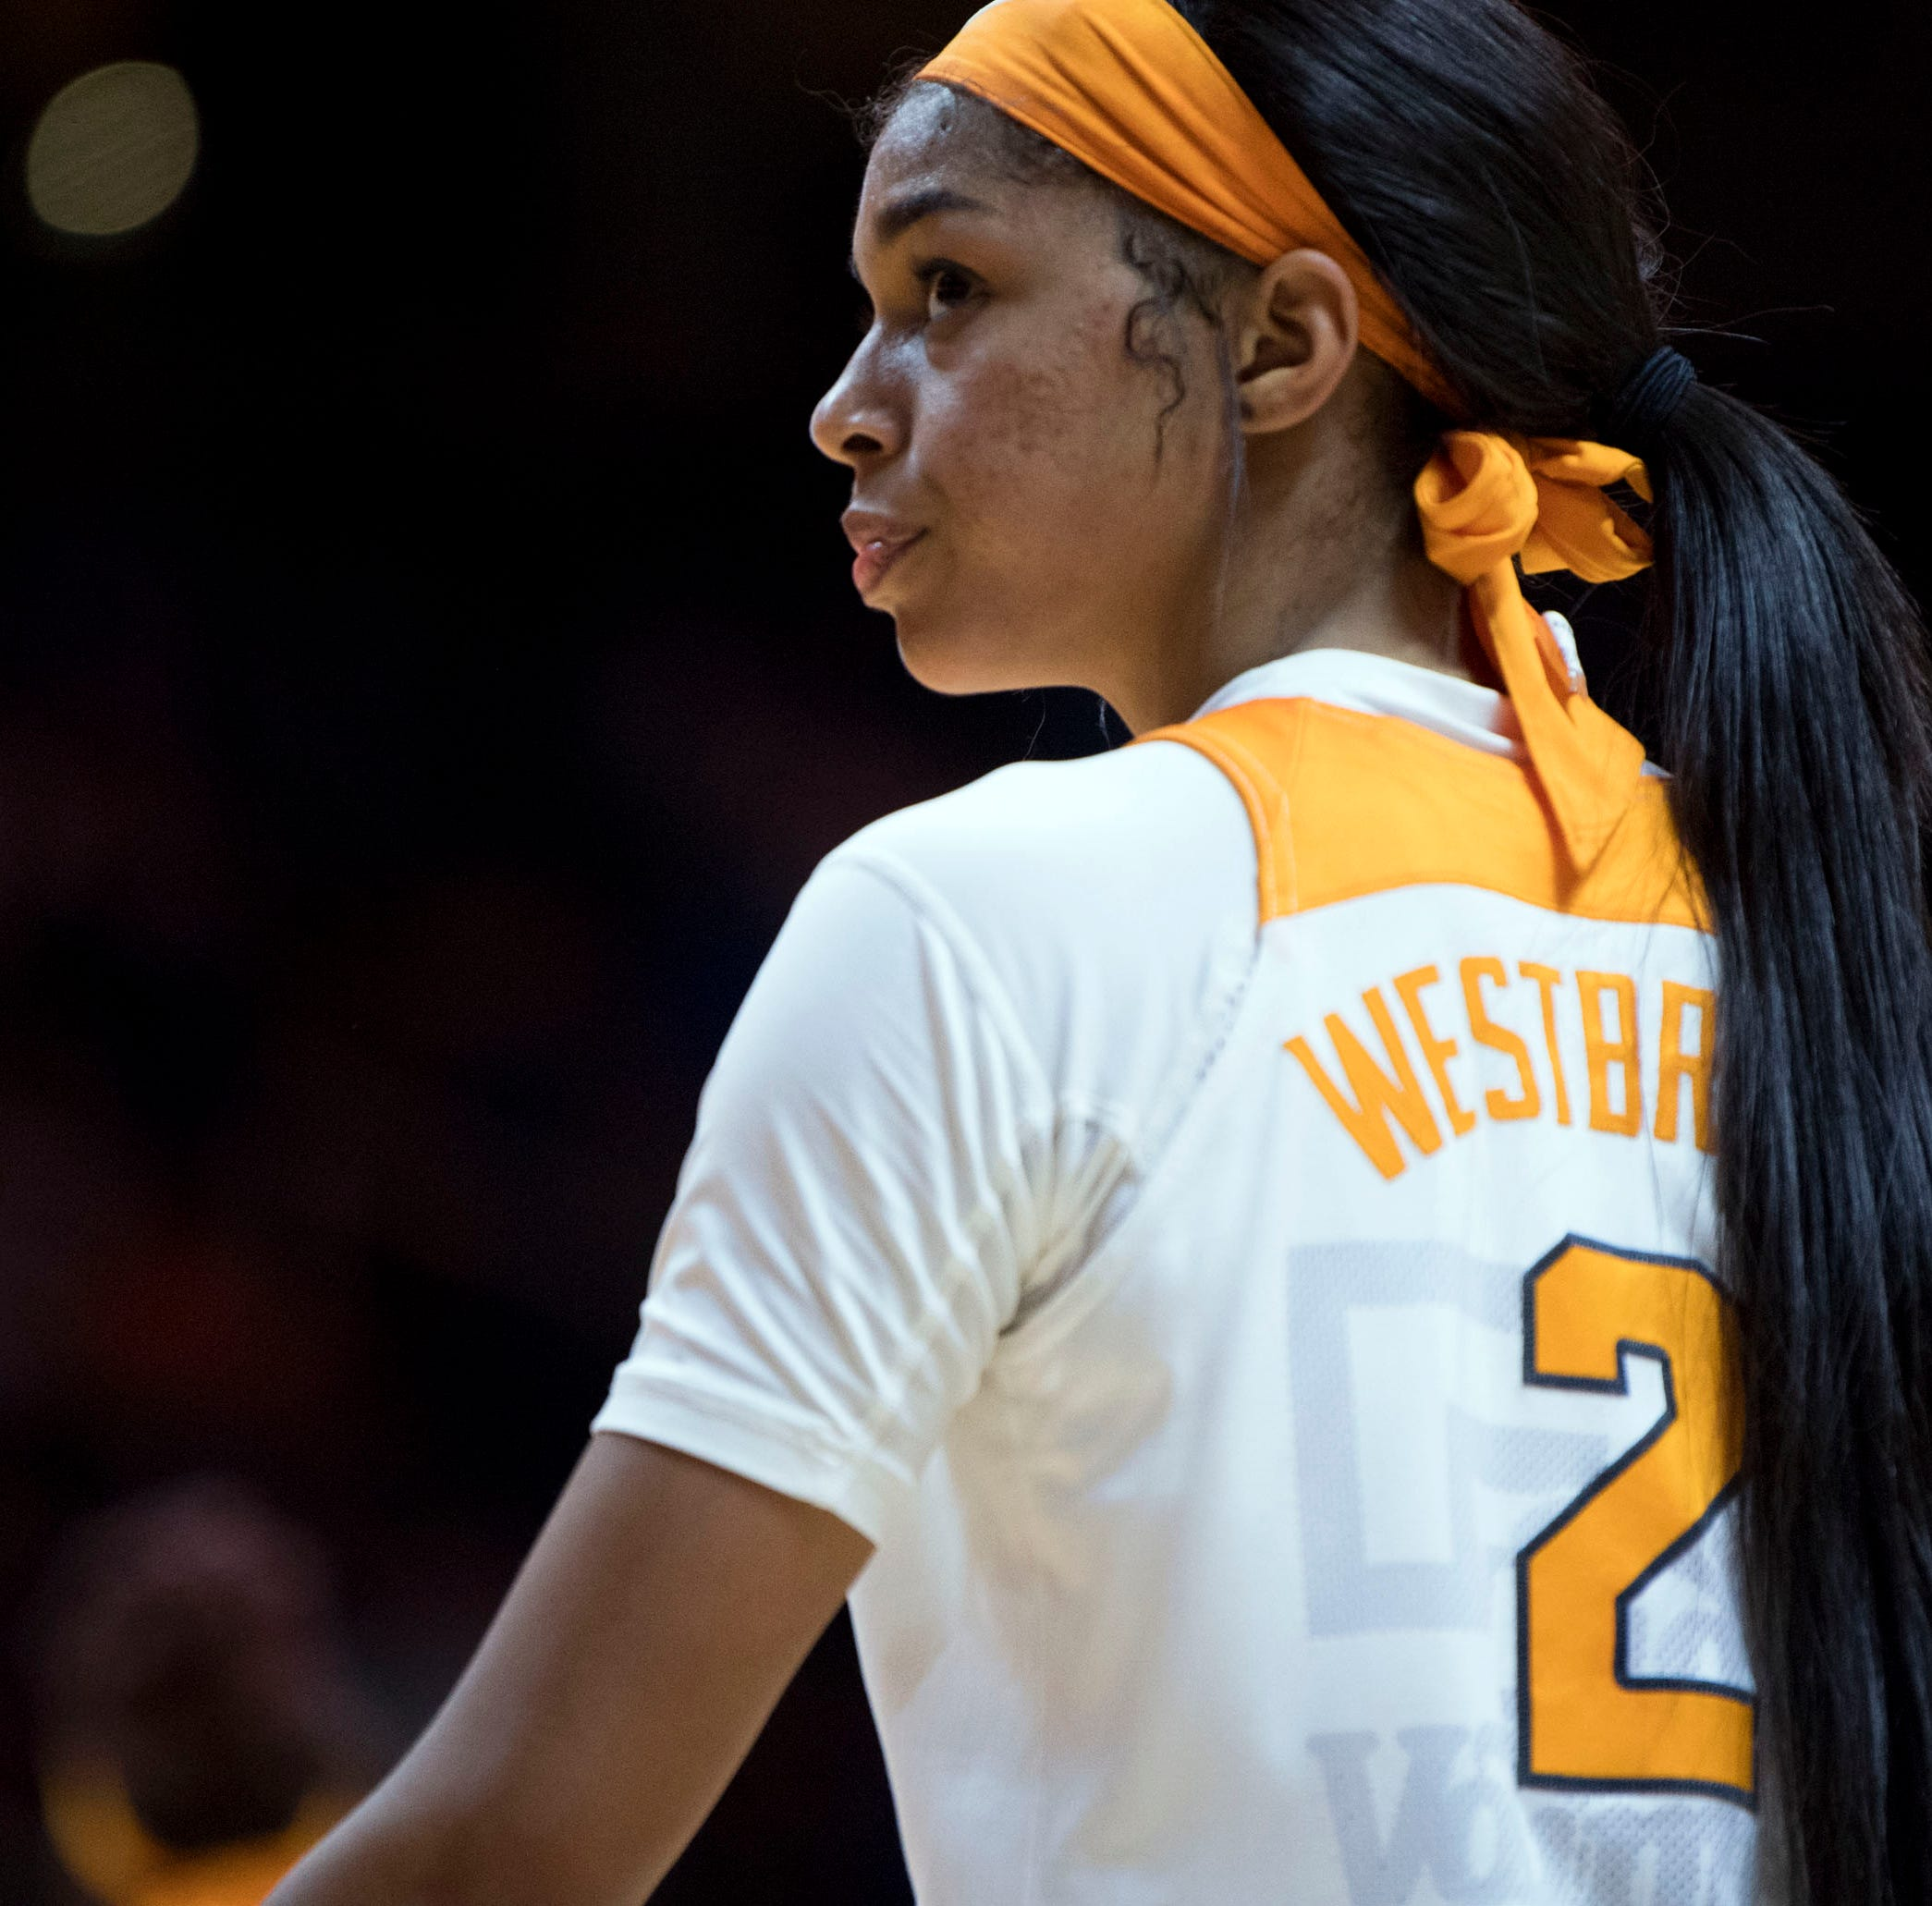 Former Lady Vols star Evina Westbrook announces transfer to UConn